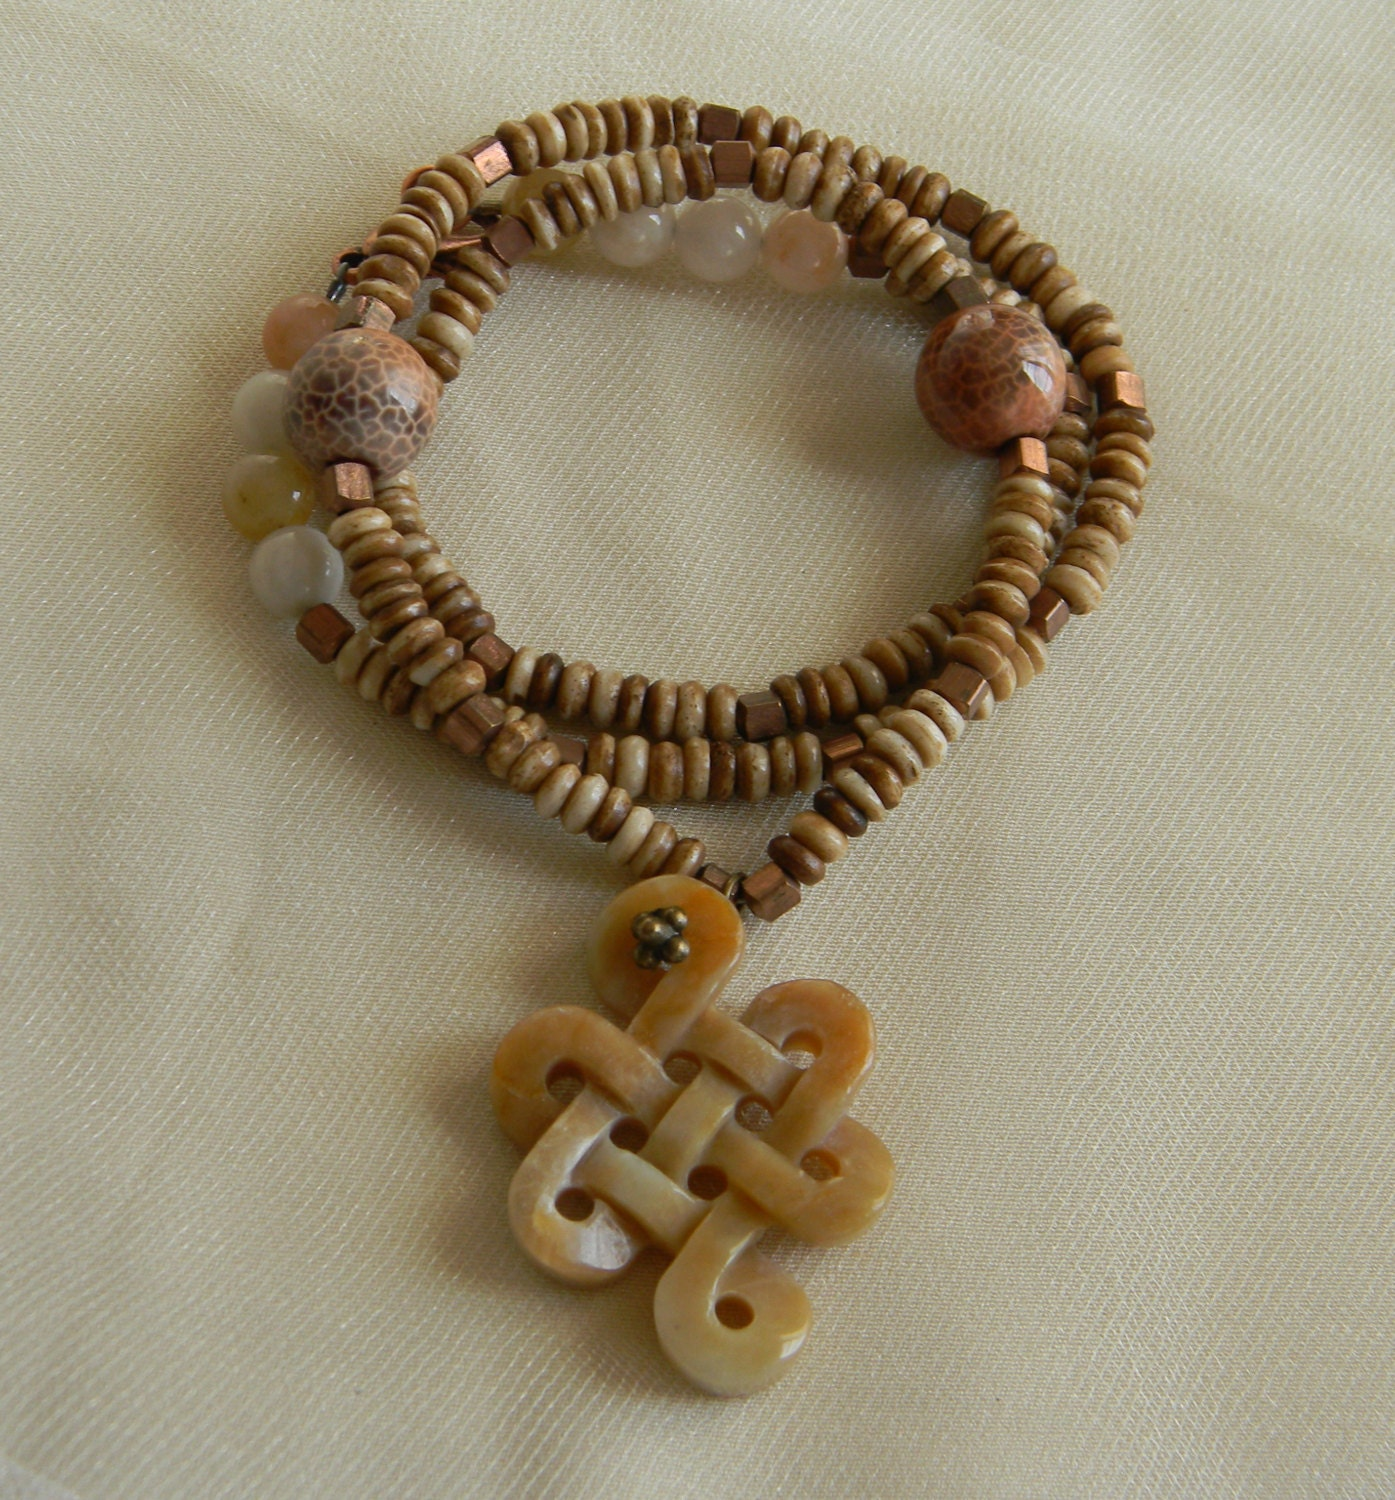 carved jade infinity knot pendant w bone necklace